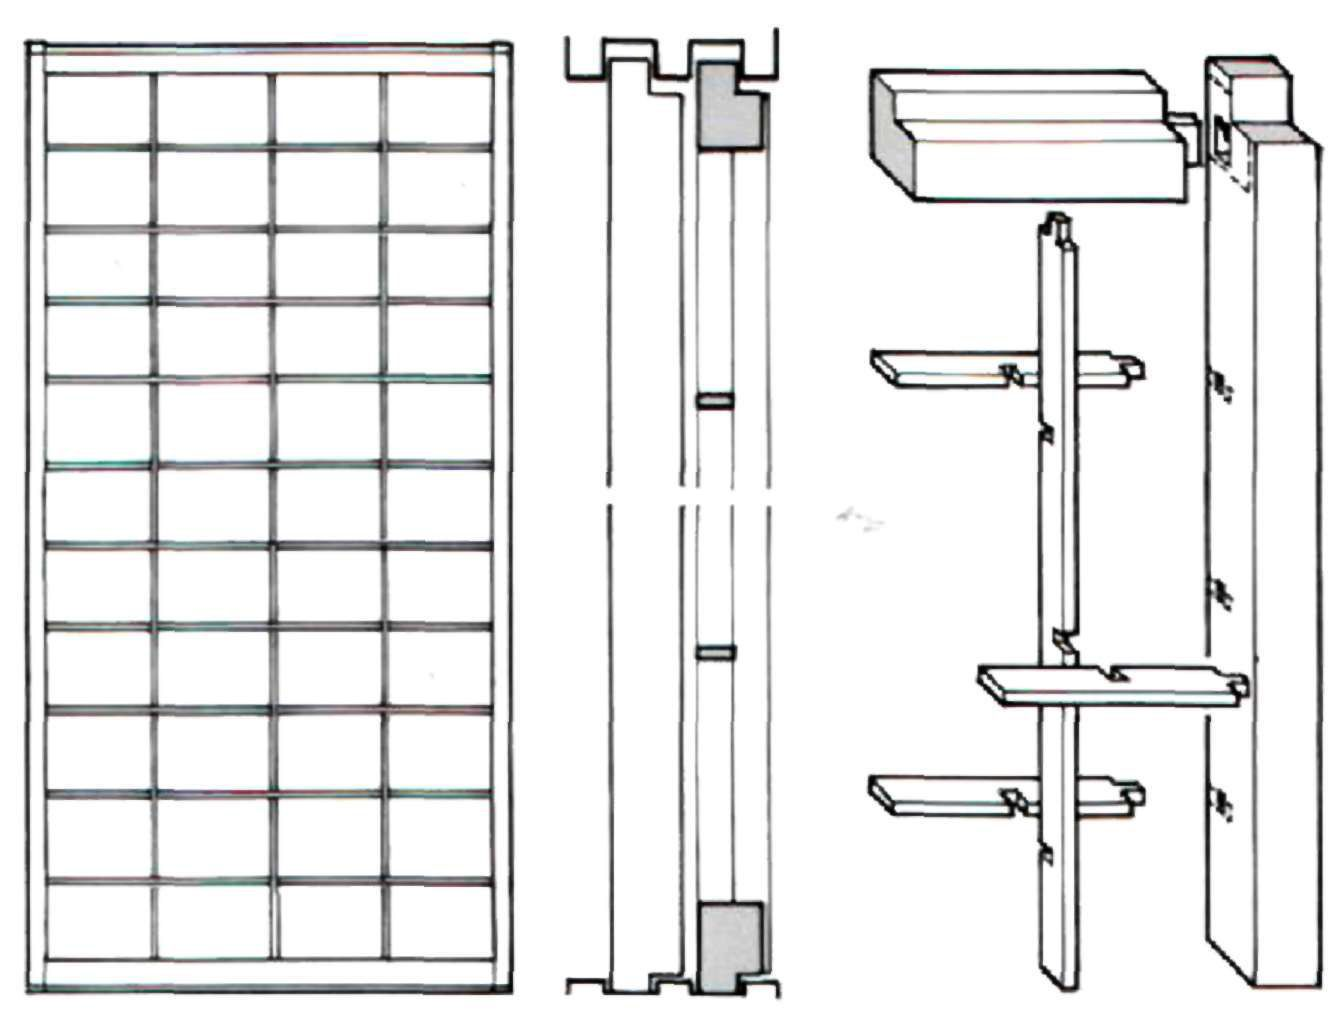 Remodeling House Ideas  A Japanese Translucent Sliding Doors 02 Since the paper \ breathes  sc 1 st  Pinterest & Remodeling House Ideas : A Japanese Translucent Sliding Doors 02 ...